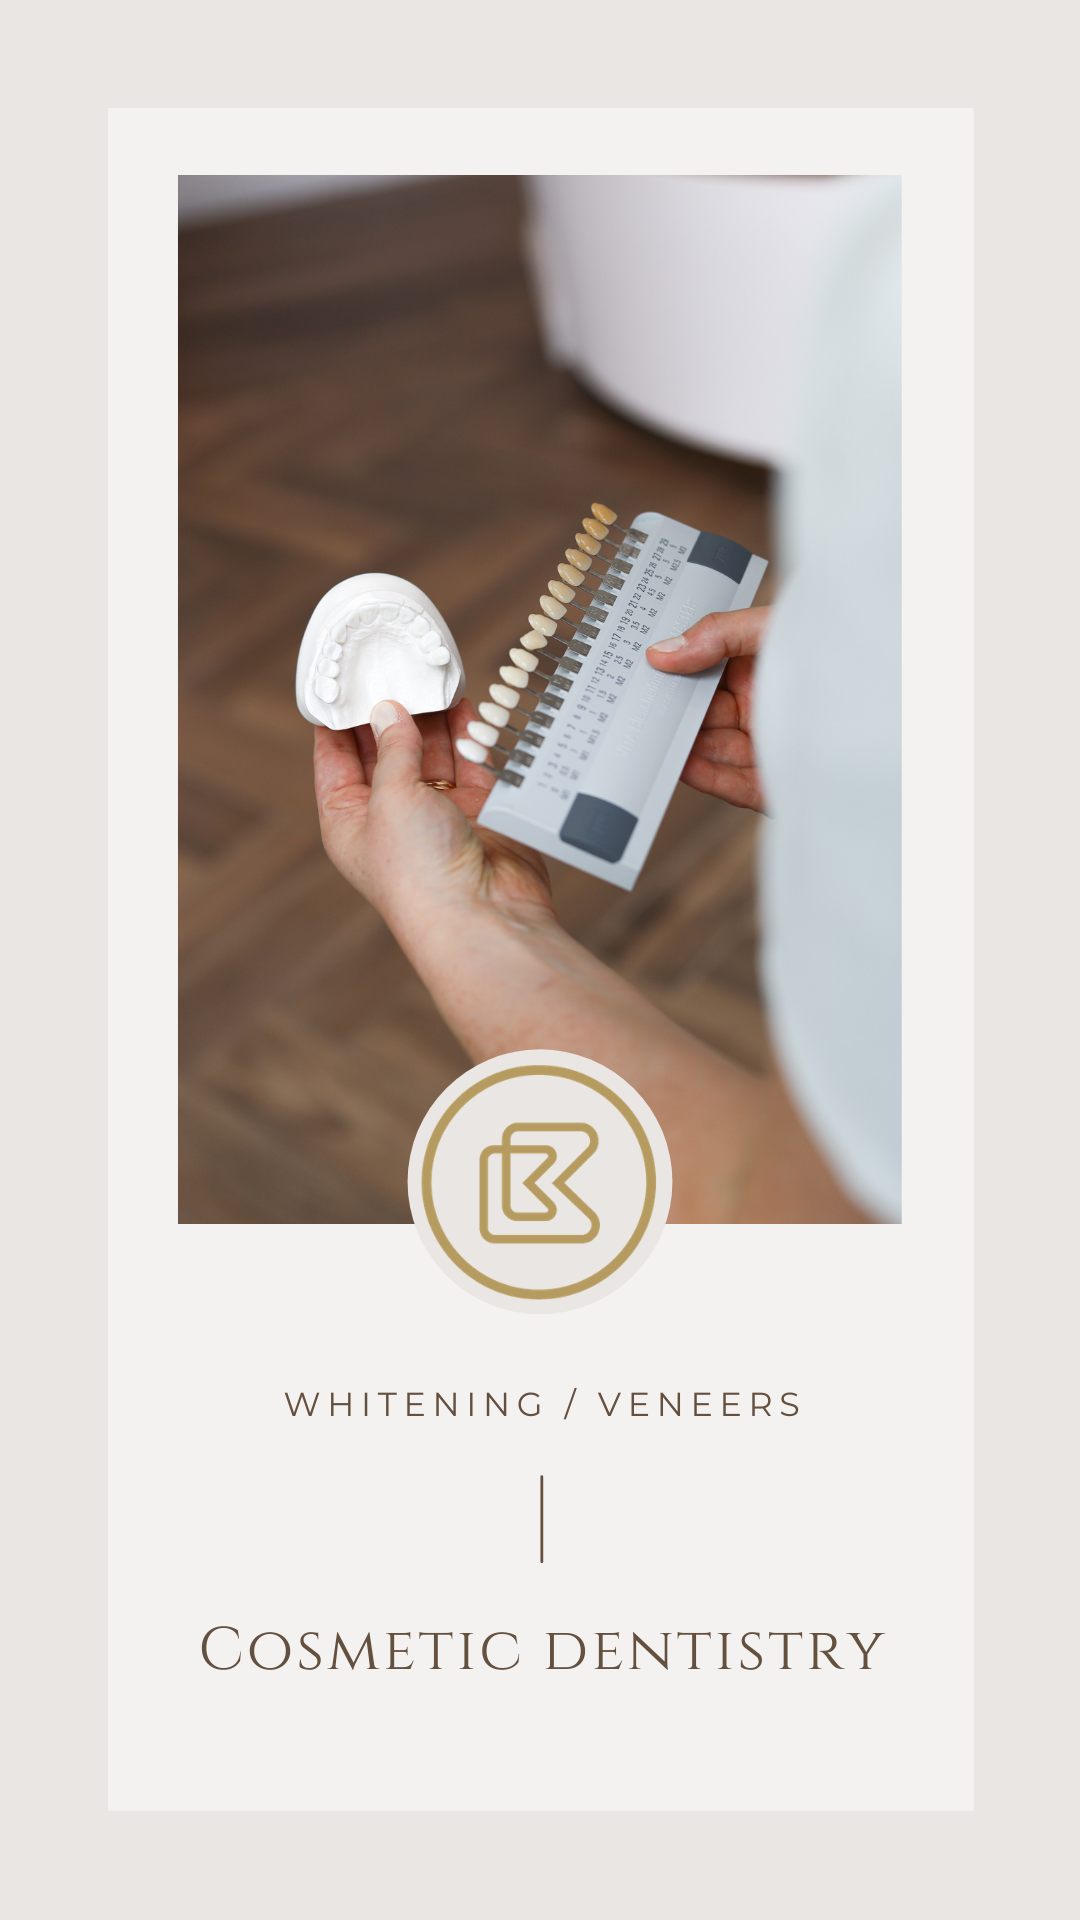 For chipped and discoloured teeth, teeth whitening in combination with non-invasive bonding or minimally-prepped veneers are great options for enhancing your natural smile.